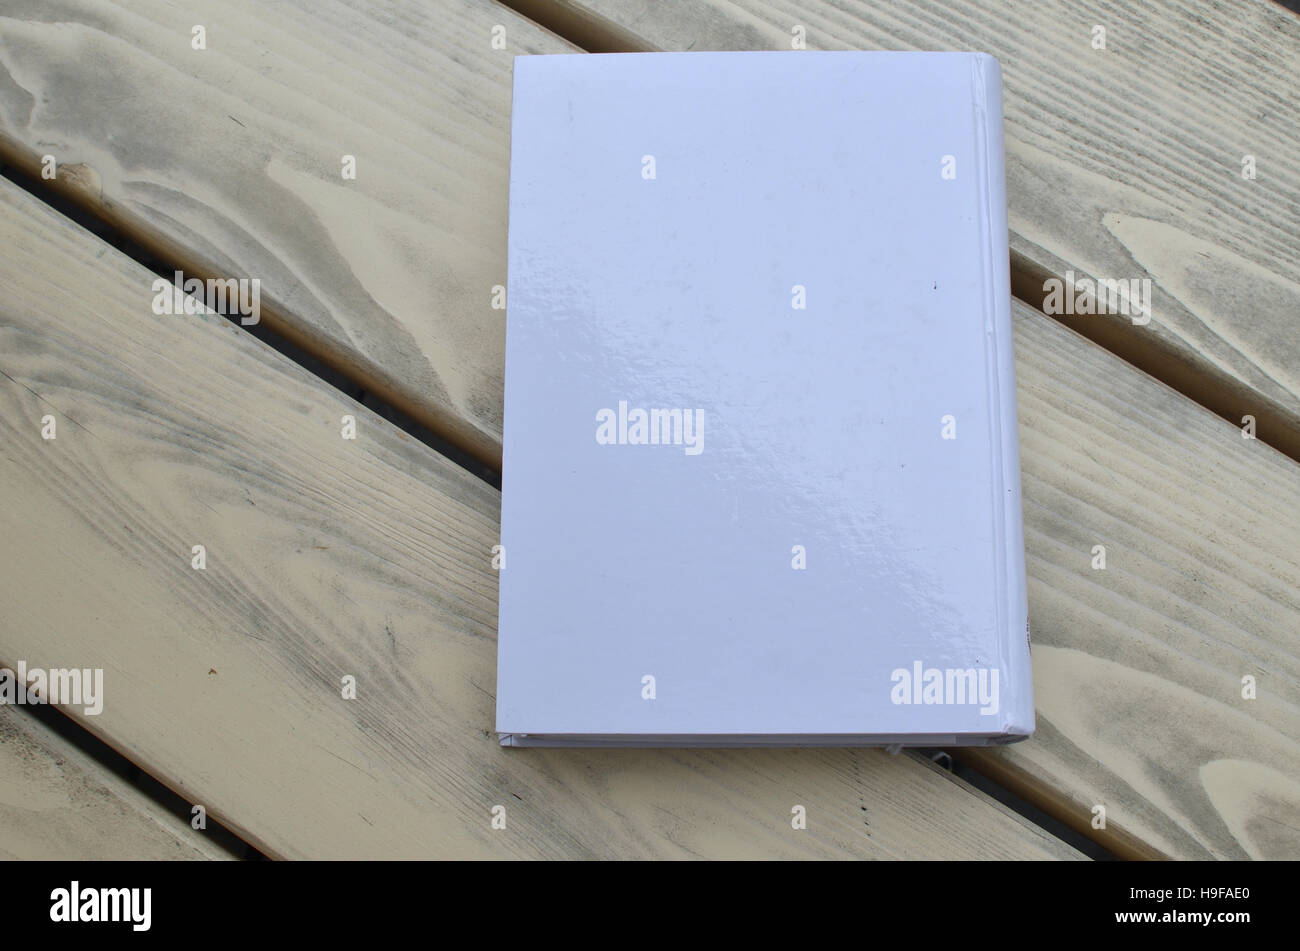 Closed white hard cover closed book on a wooden bench - Stock Image